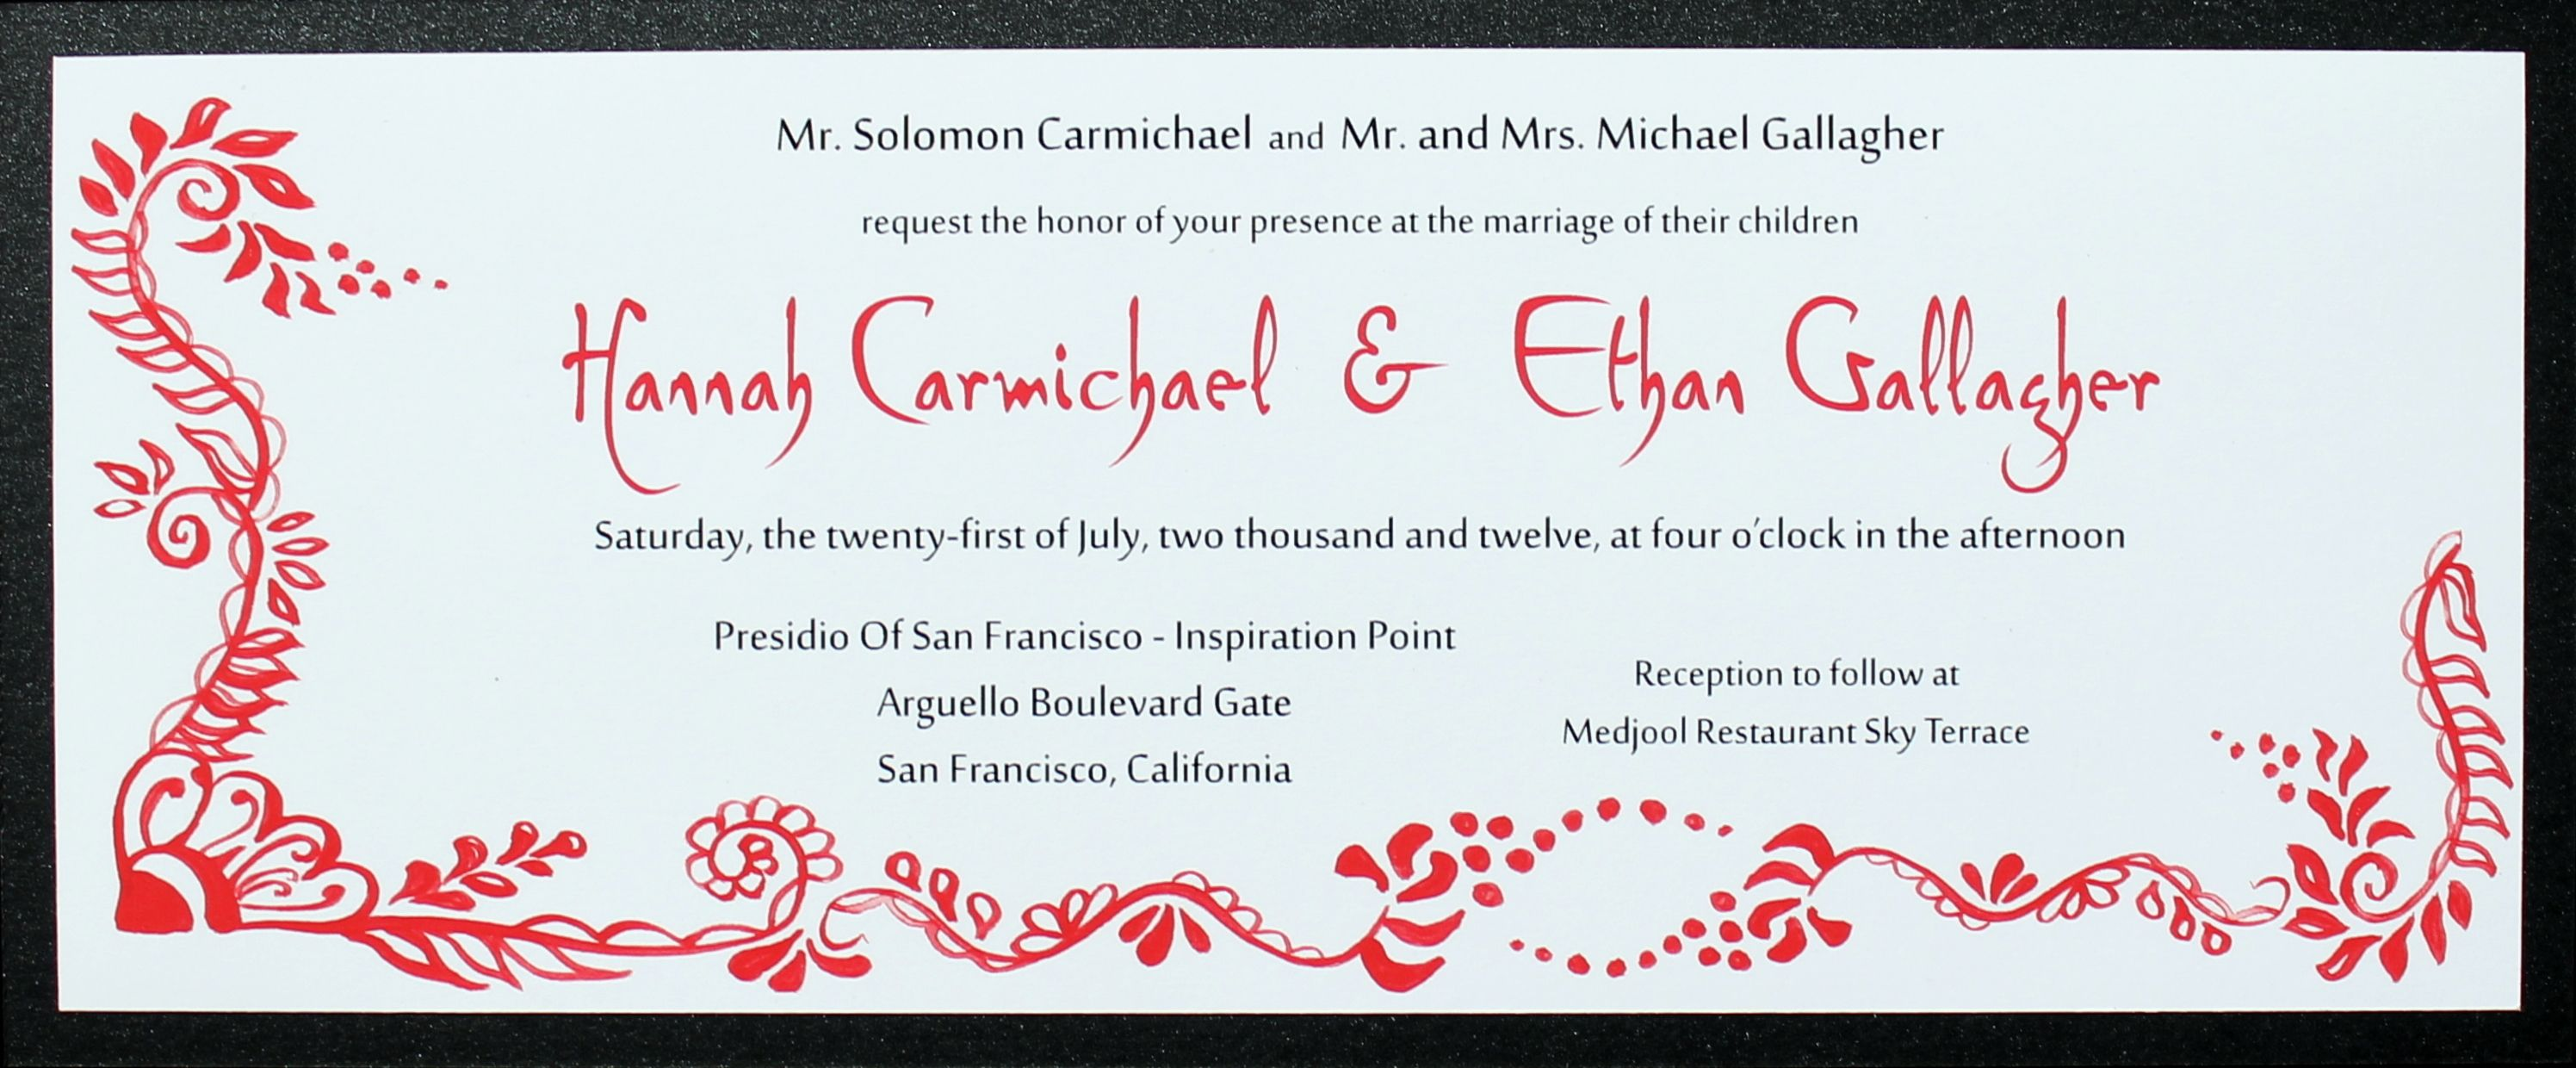 Wix red wedding invitations red wedding and invitation design red wedding invitation design inspired by 1960s san francisco with a flavor of middle eastern influence stopboris Choice Image